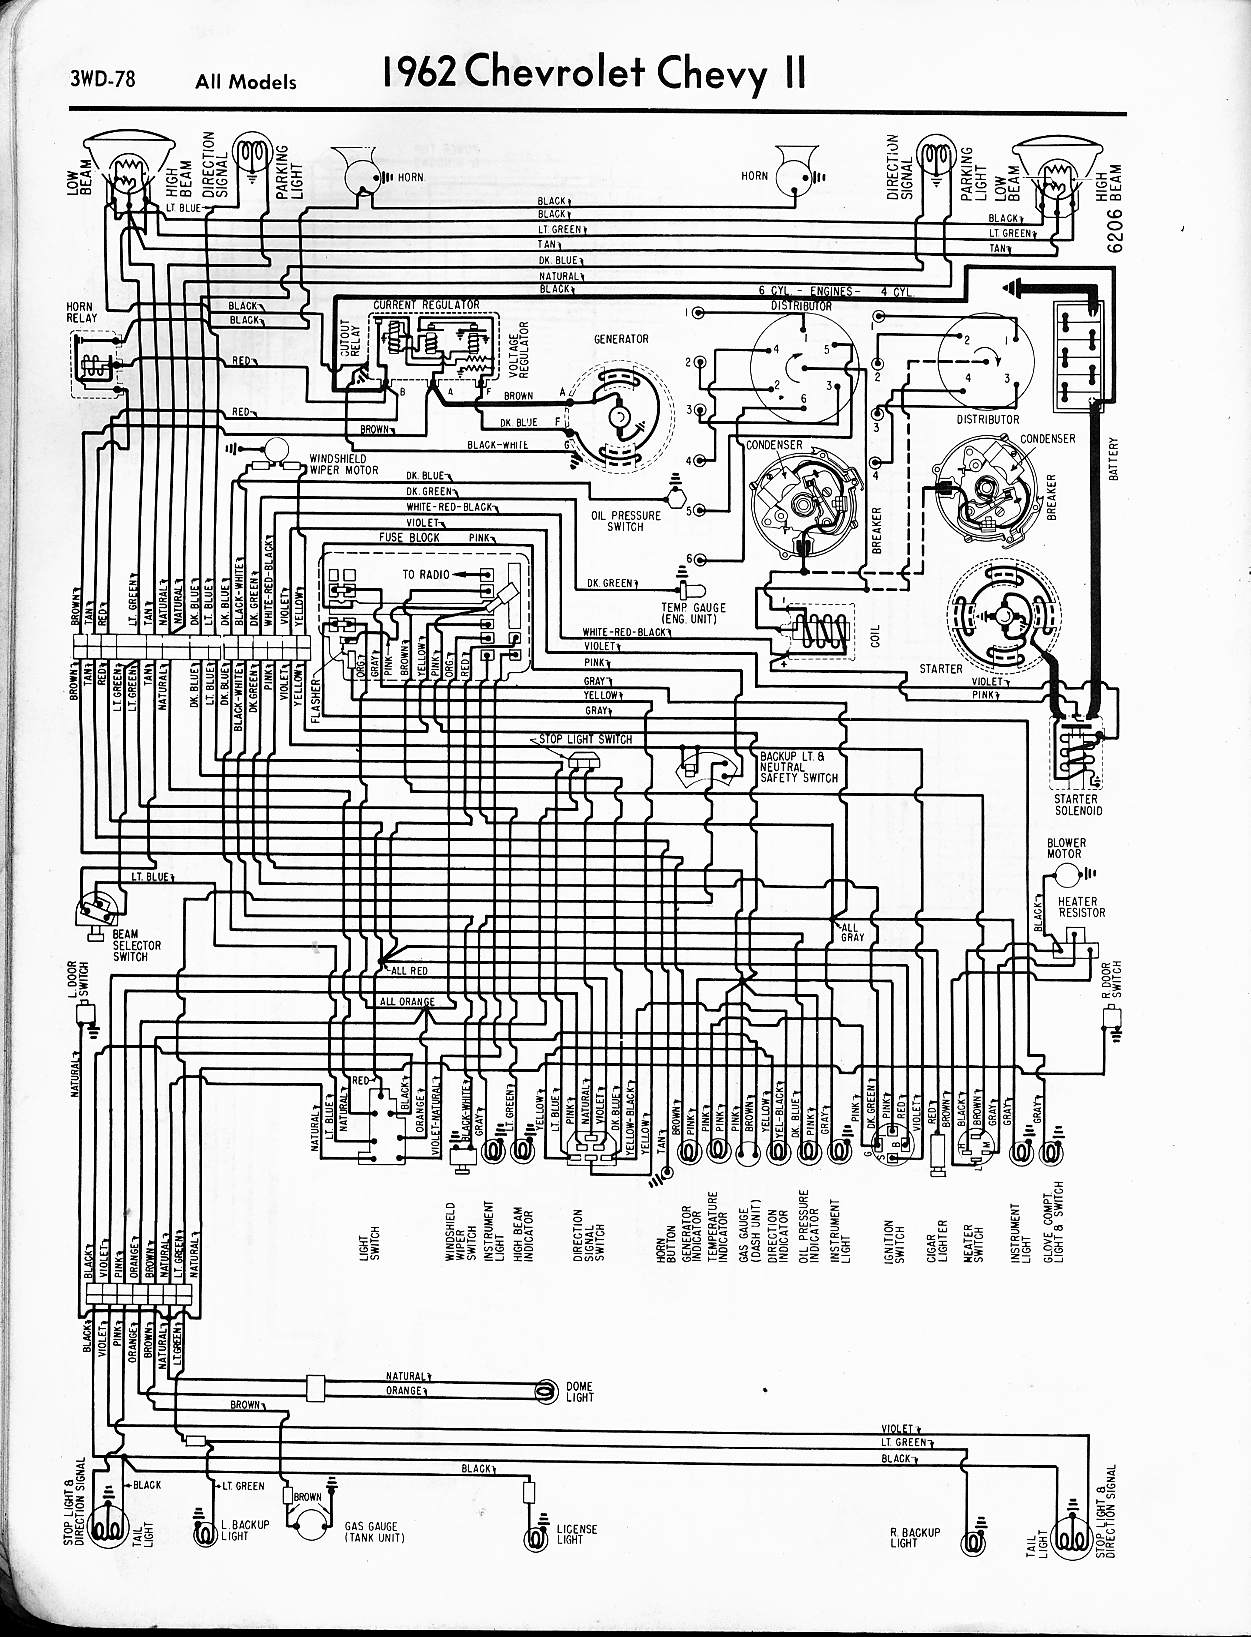 Fabulous 1976 Nova Wiring Diagram Wiring Diagram Tutorial Wiring Cloud Hisonuggs Outletorg